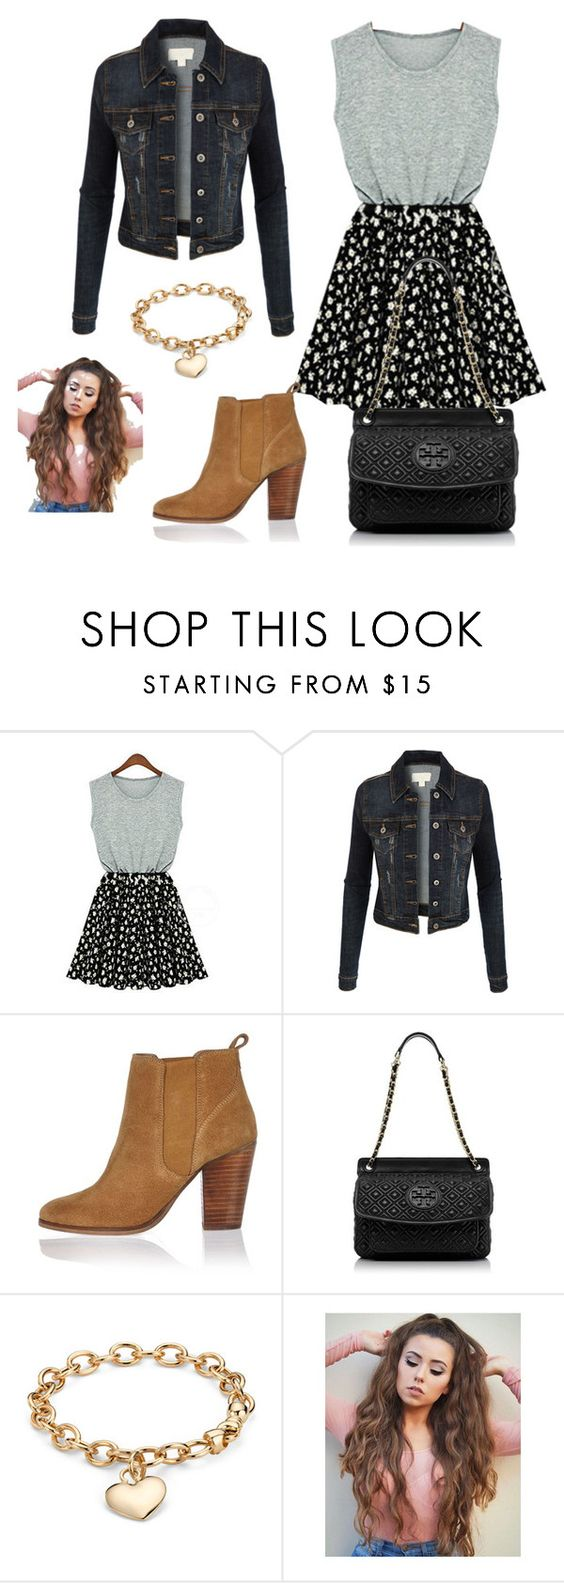 """""""Untitled #1841"""" by jenny100415 ❤ liked on Polyvore featuring LE3NO, River Island, Tory Burch and Blue Nile"""